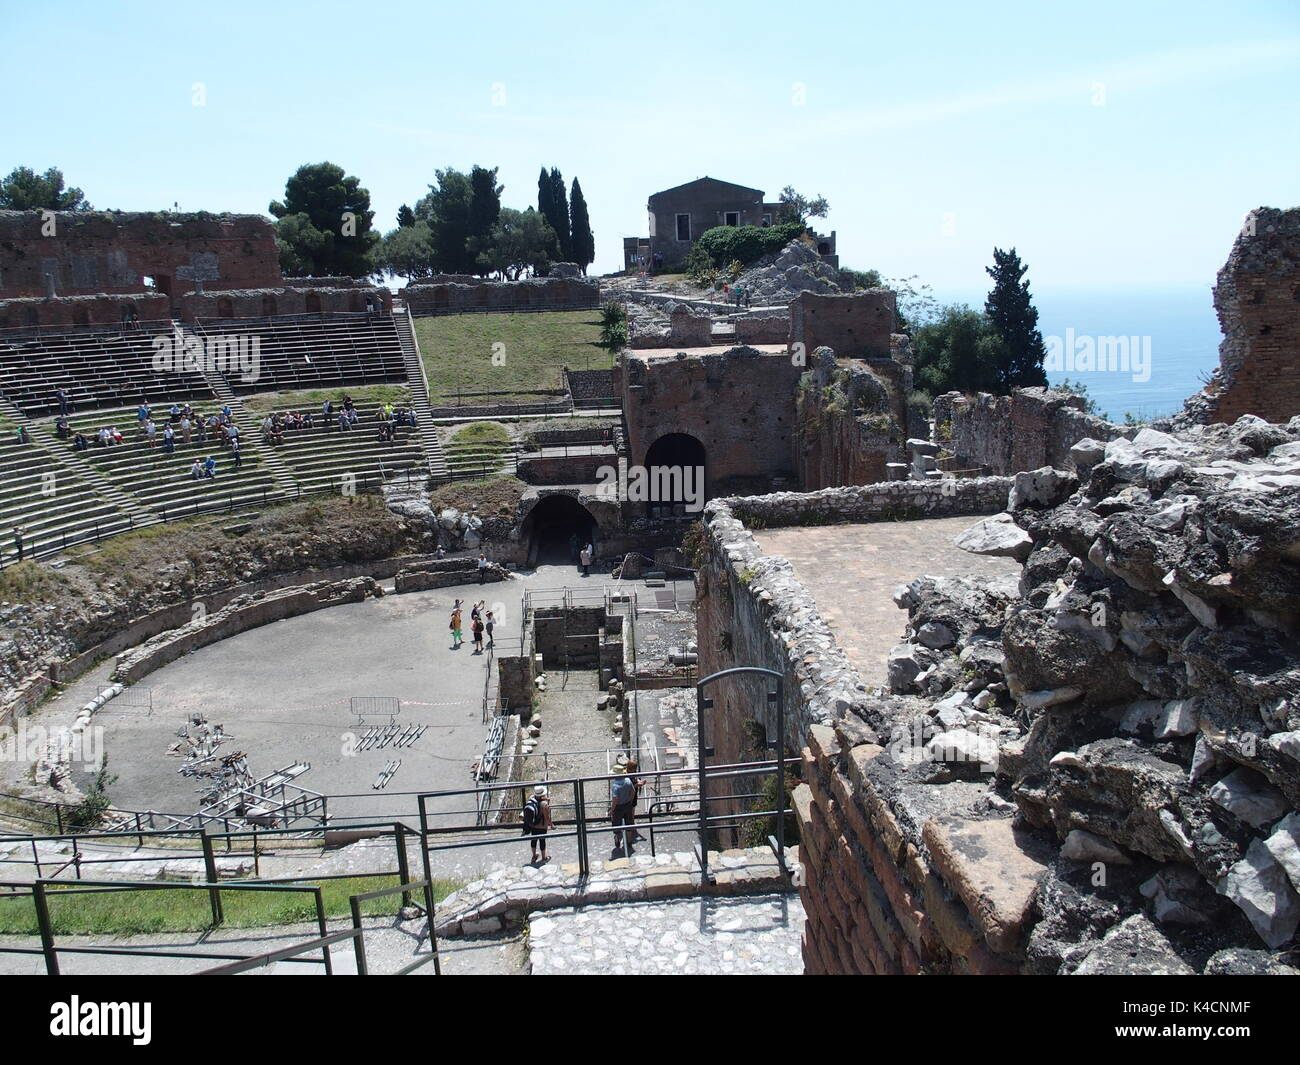 the theatre of ancient greece and rome One of the key points of ancient greek philosophy was the role of reason and   around the mediterranean and influenced hellenistic and roman theatre.